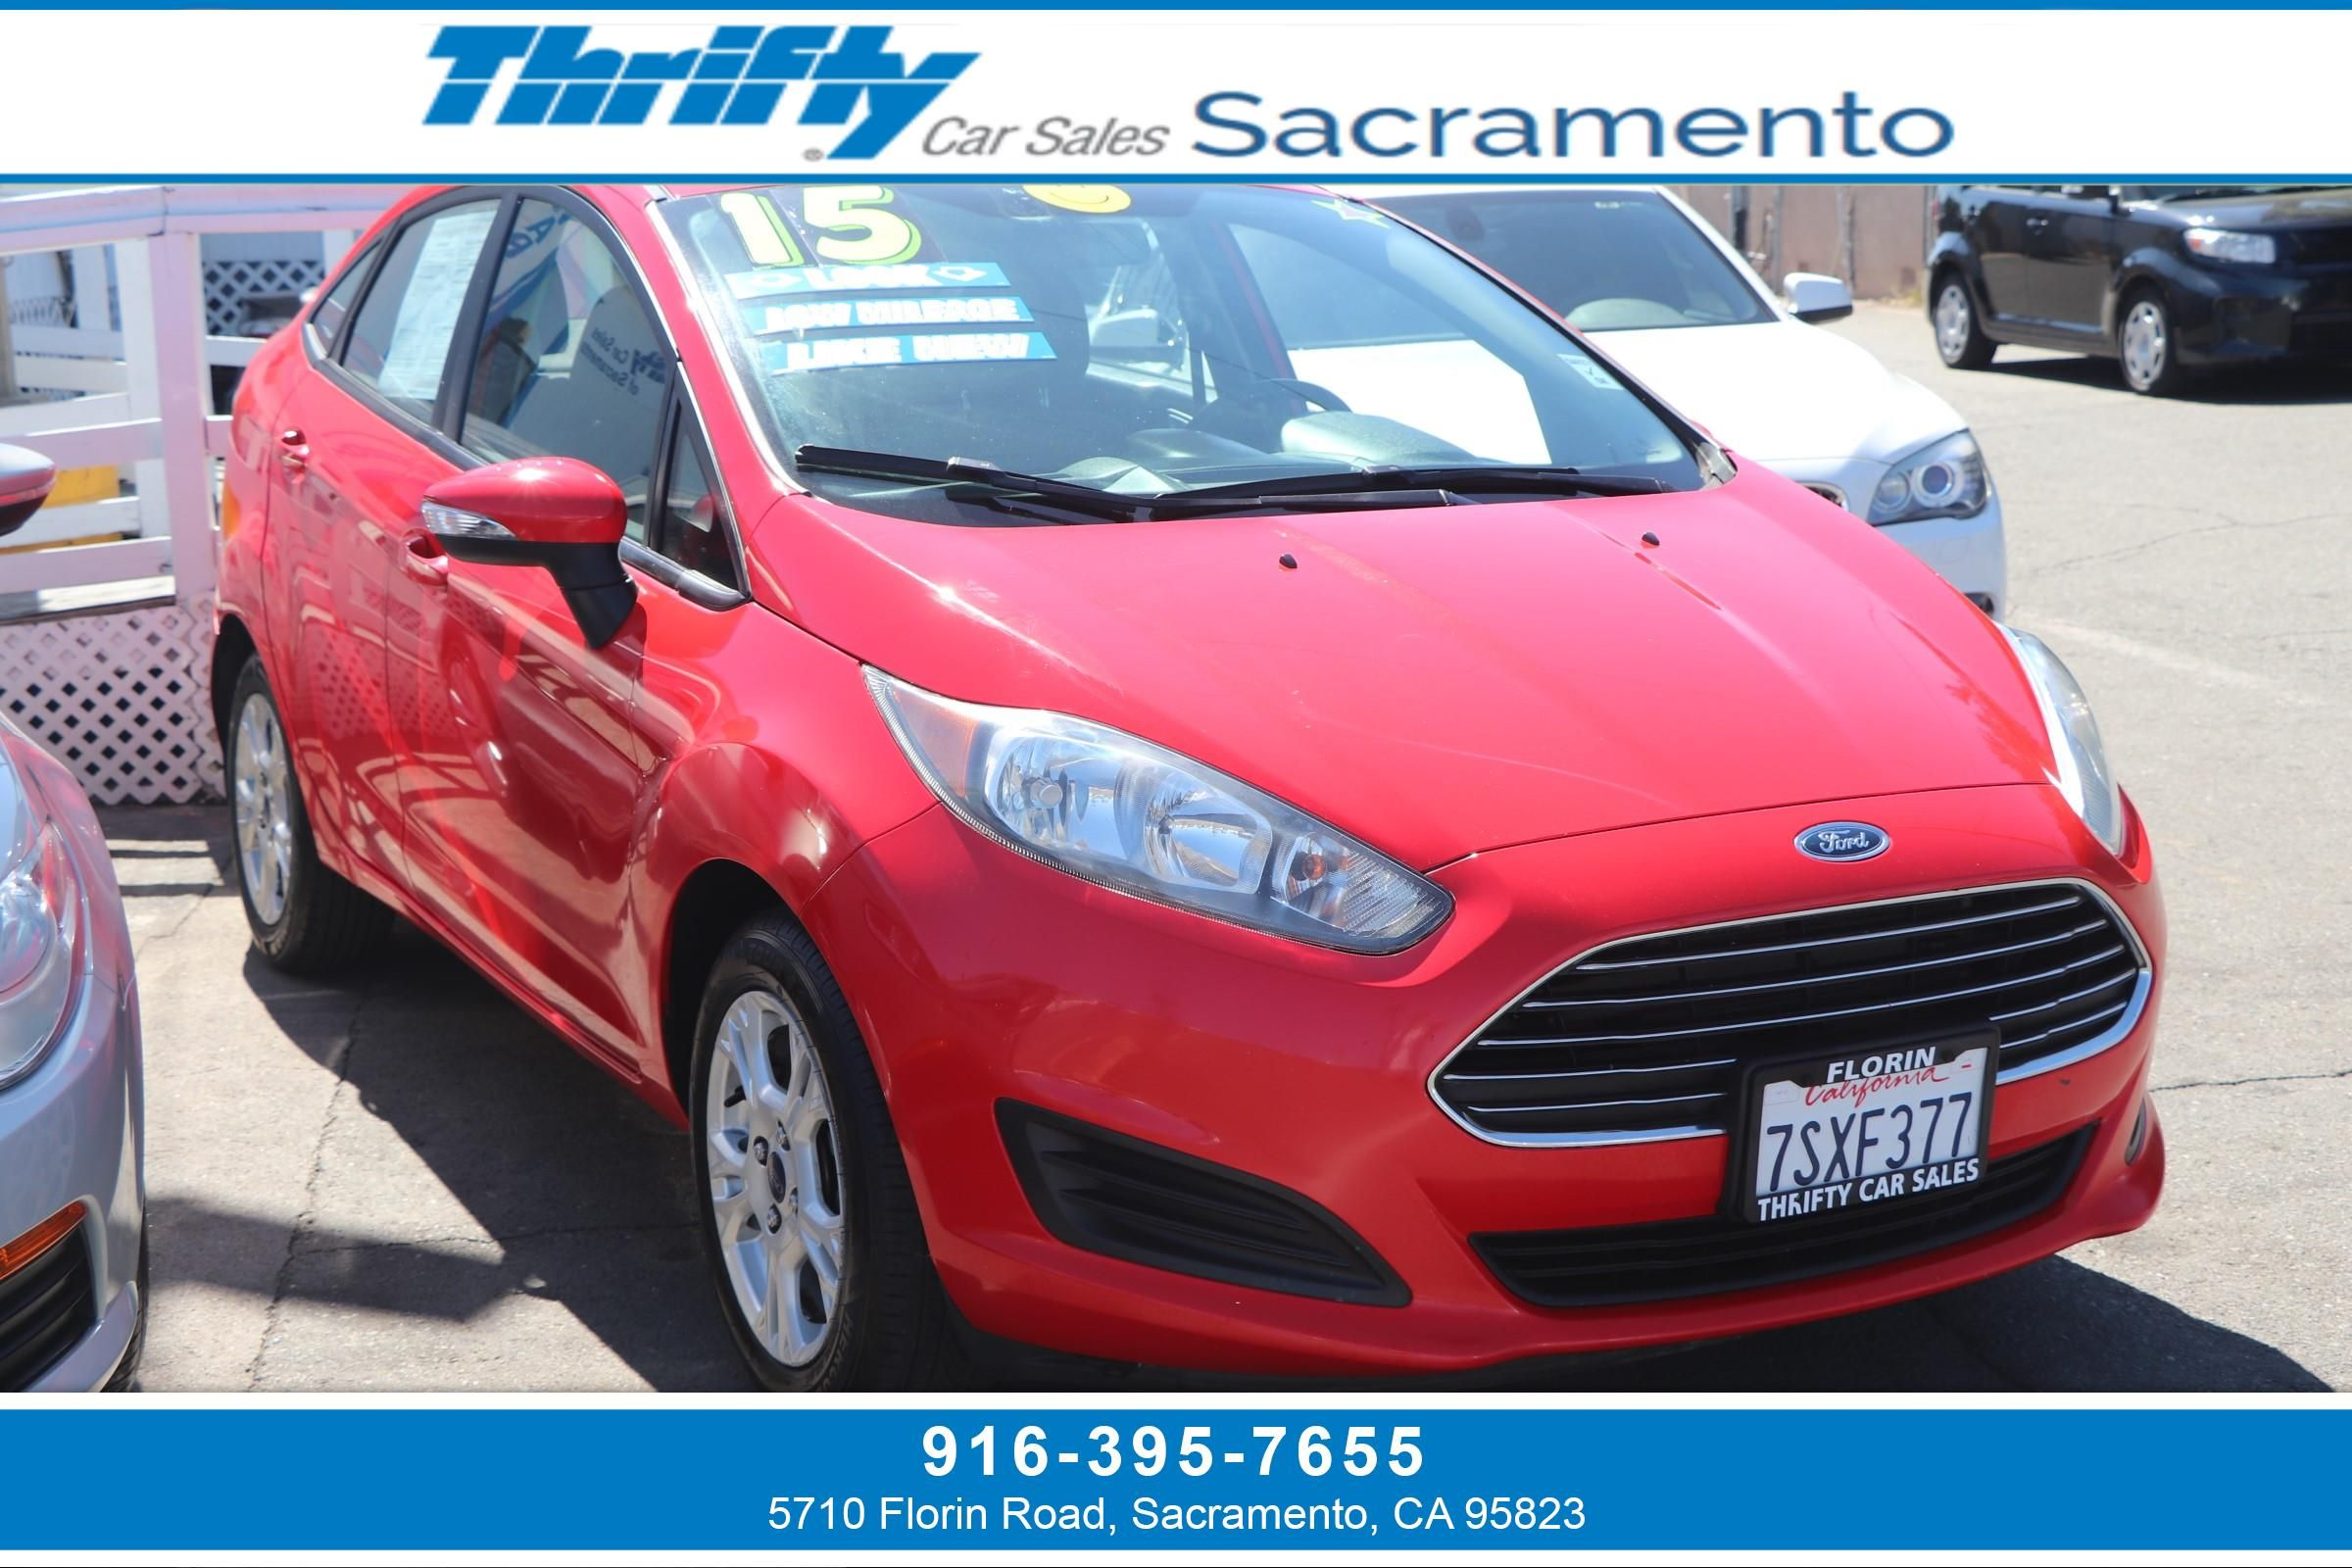 Cars For Sale Sacramento >> Thriftycarsales Sacramento Ca Inventory Buy Used Cars